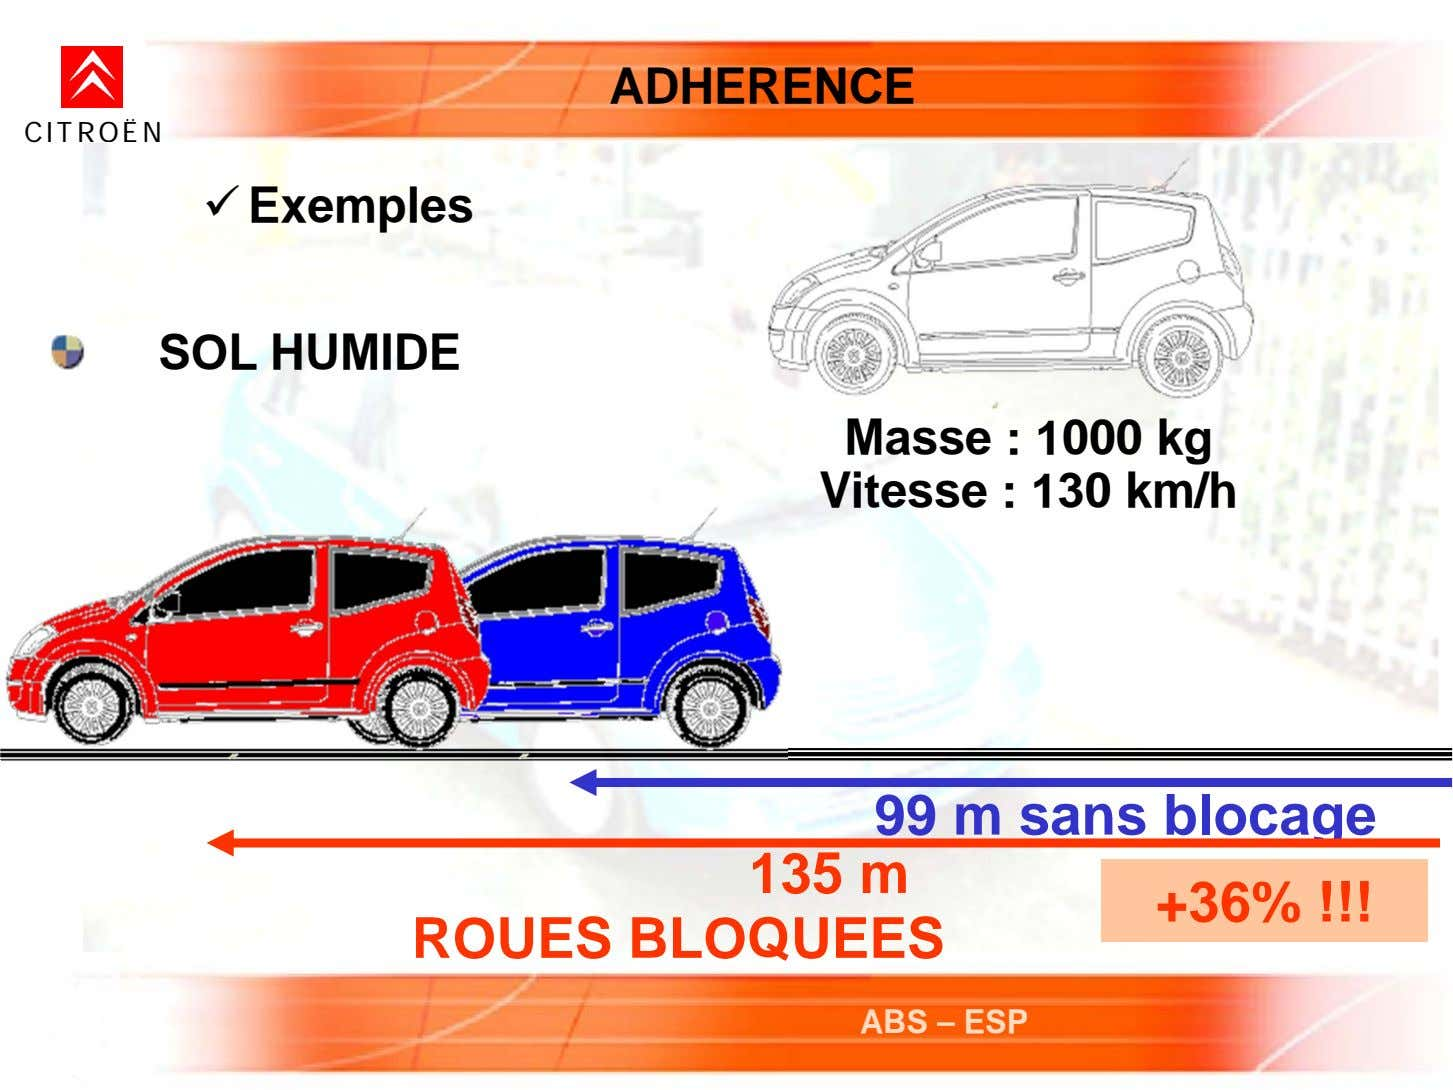 ADHERENCE CITROËN  Exemples SOL HUMIDE Masse : 1000 kg Vitesse : 130 km/h 99